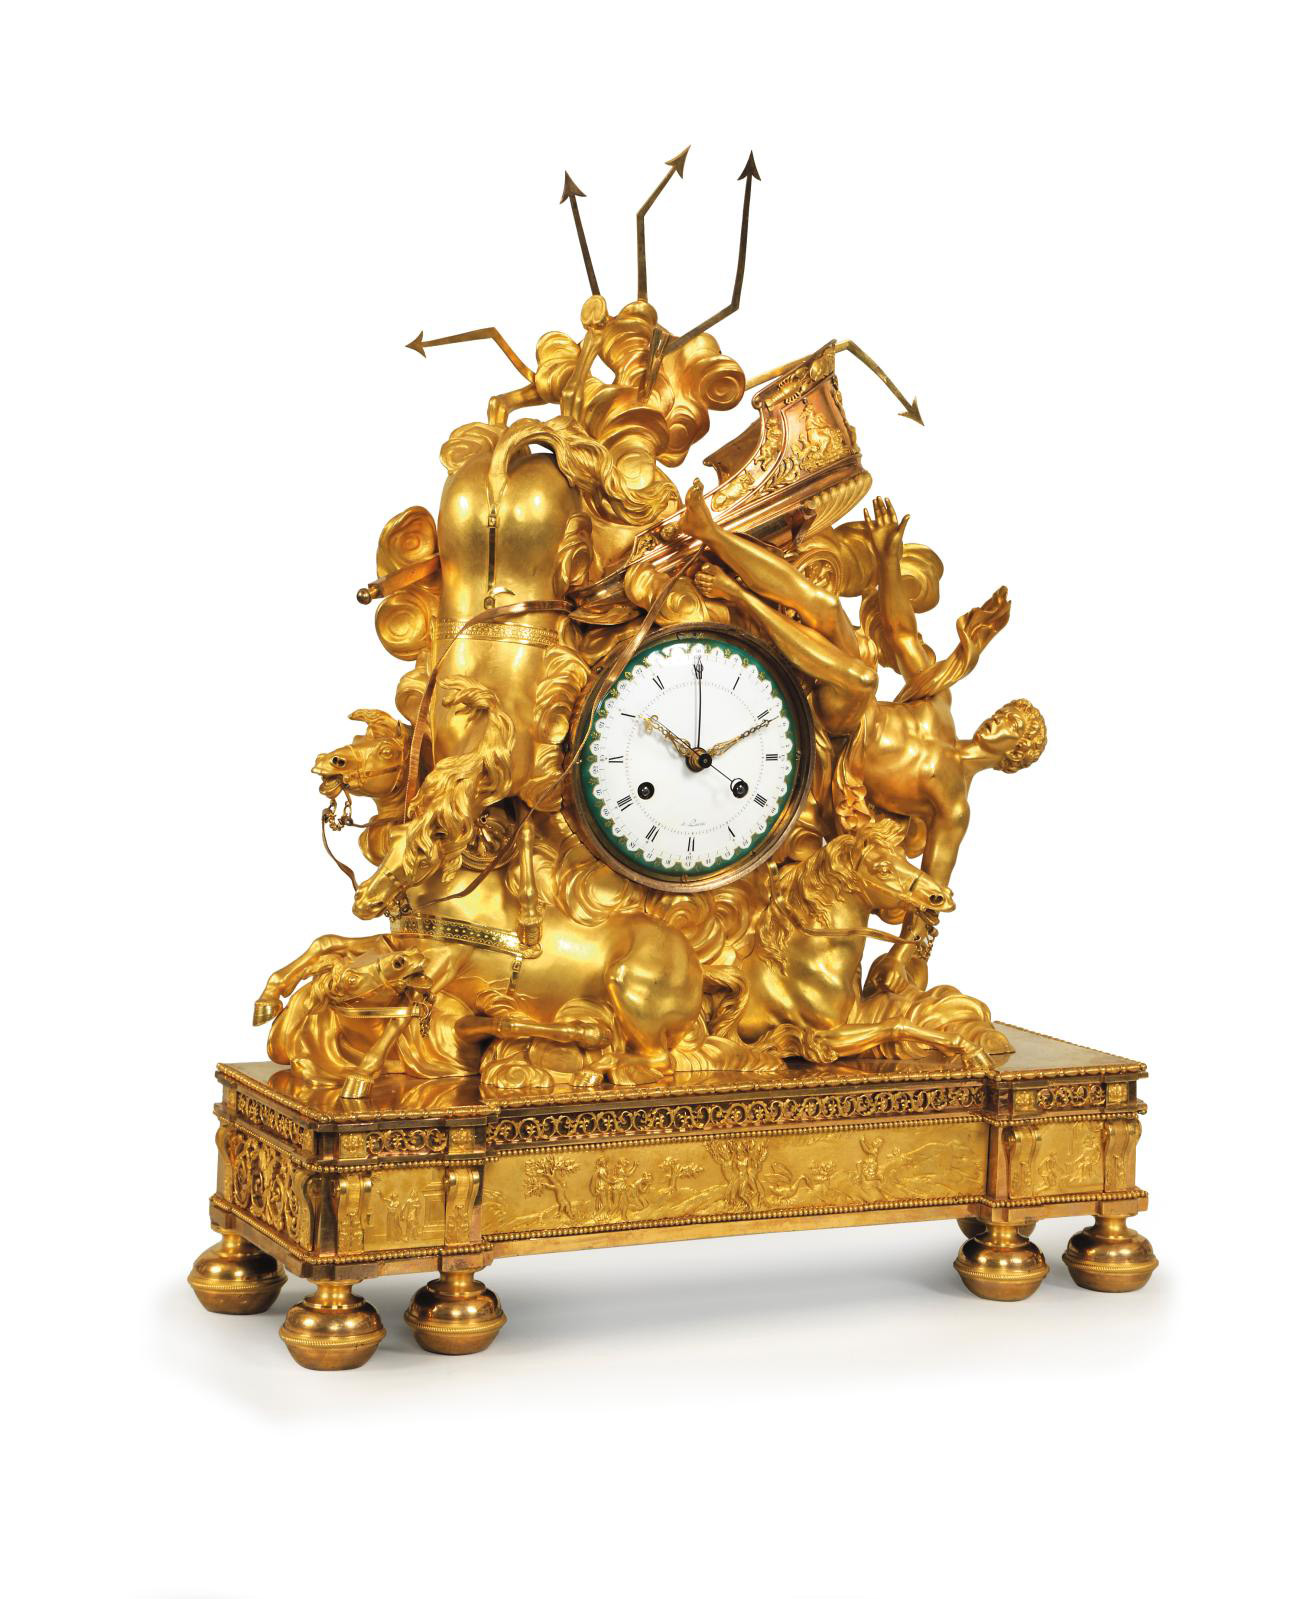 """""""The Fall of Phaeton"""", c 1800, gilt bronze clock, 53.5 x 20 x 67.5 cm/20.9 x 7.9 x 26.6 in, recorded in the apartment of the Grand Marshal"""